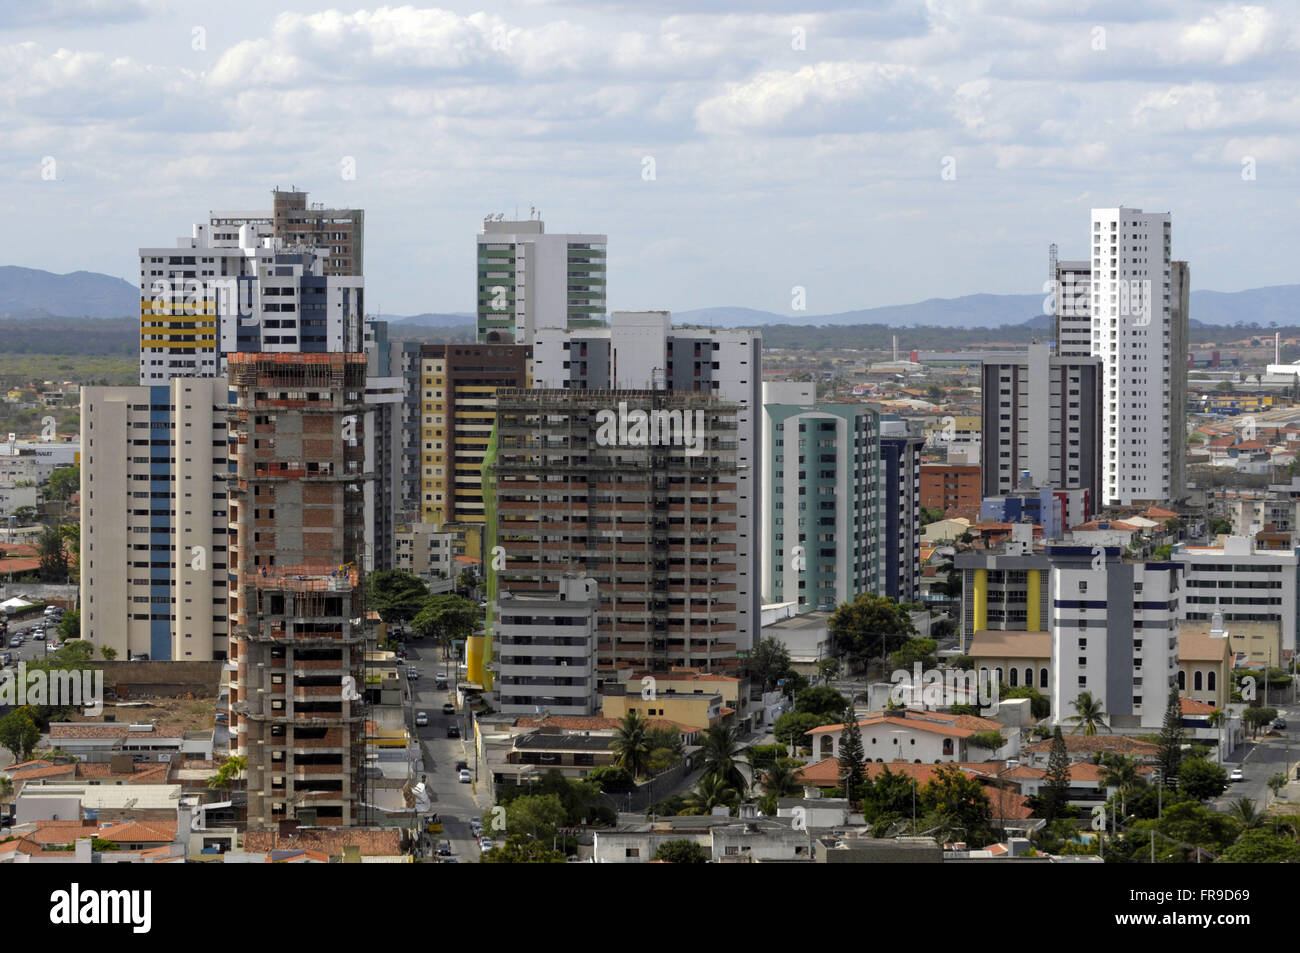 Visa upon Caruaru - residential building in the center - Stock Image